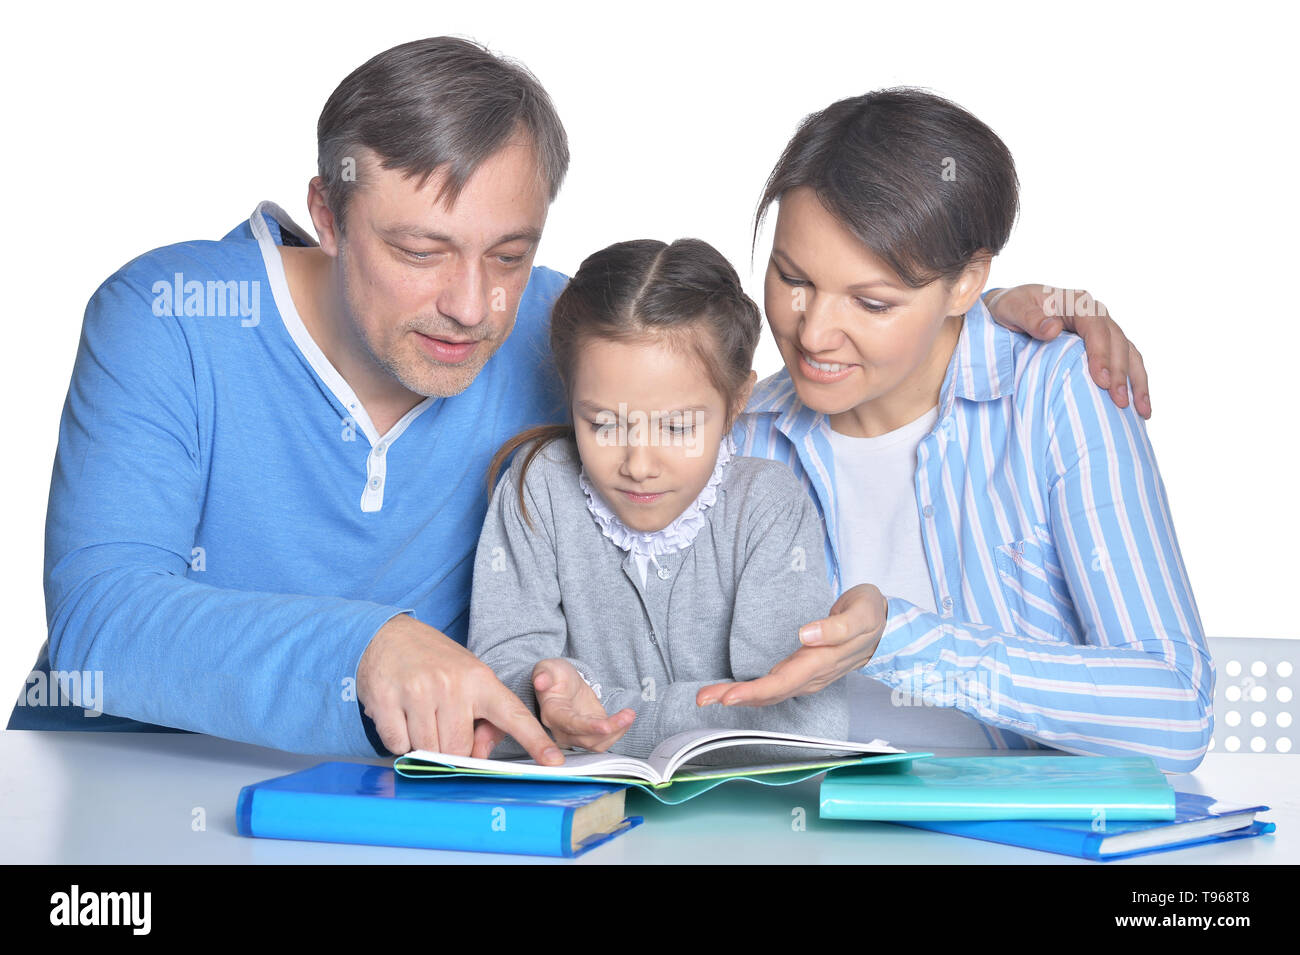 Parents with beutiful daughter reading books against white - Stock Image